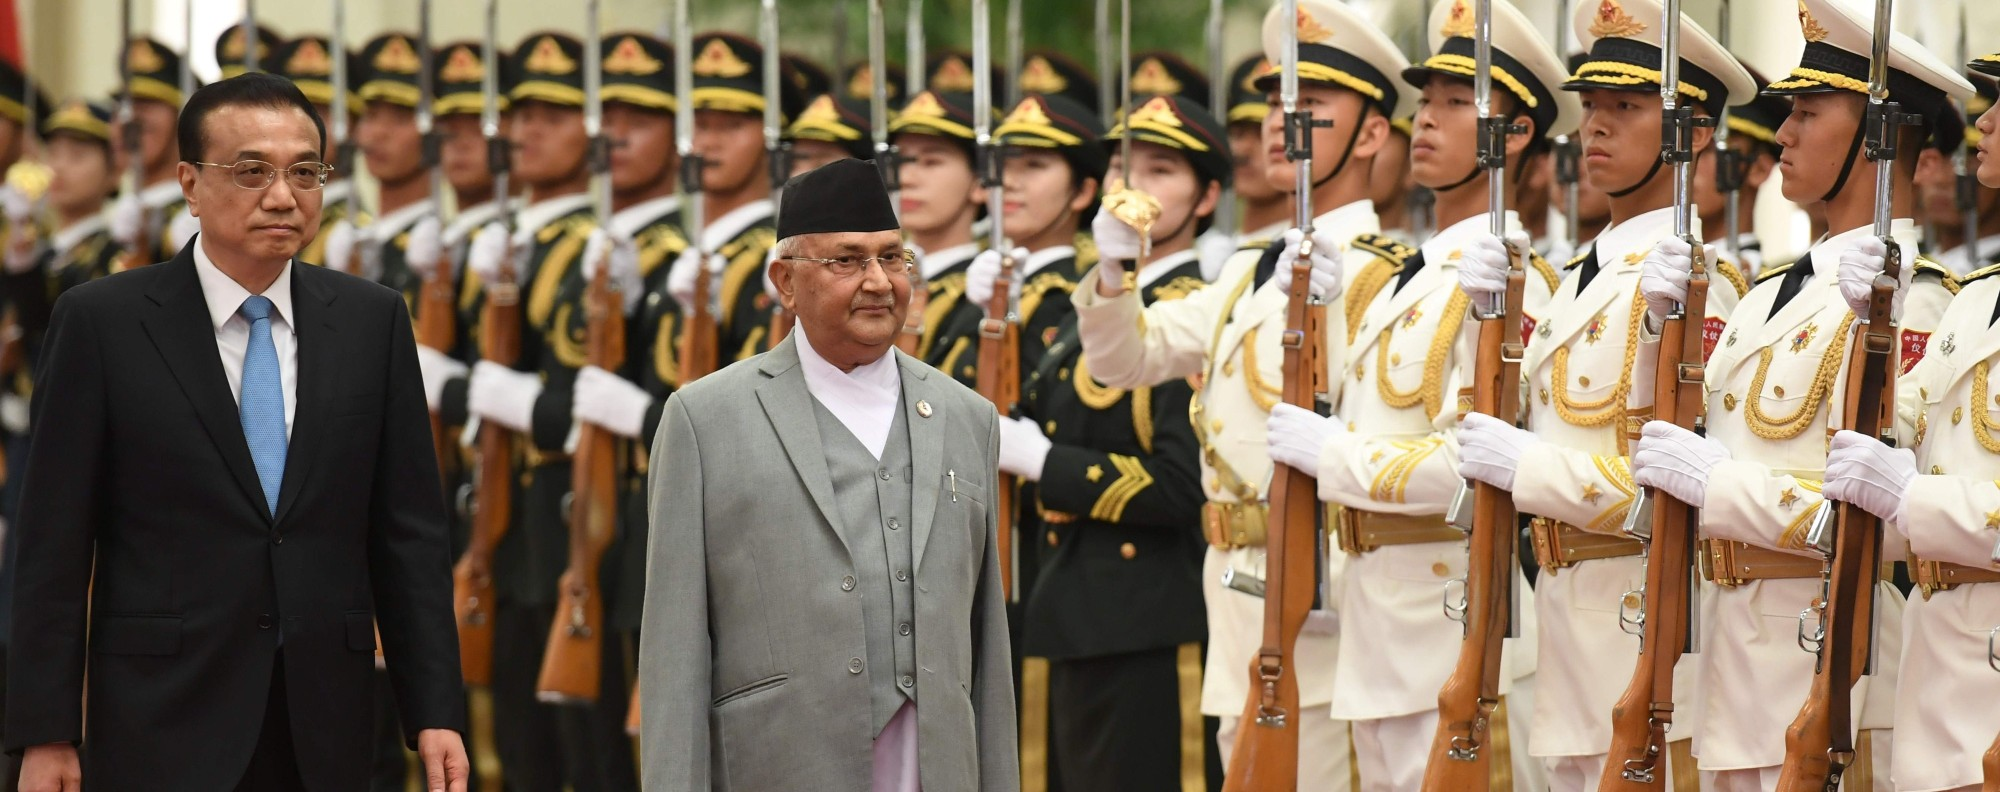 Nepal's leader K.P. Sharma Oli visits Beijing. Photo: AFP